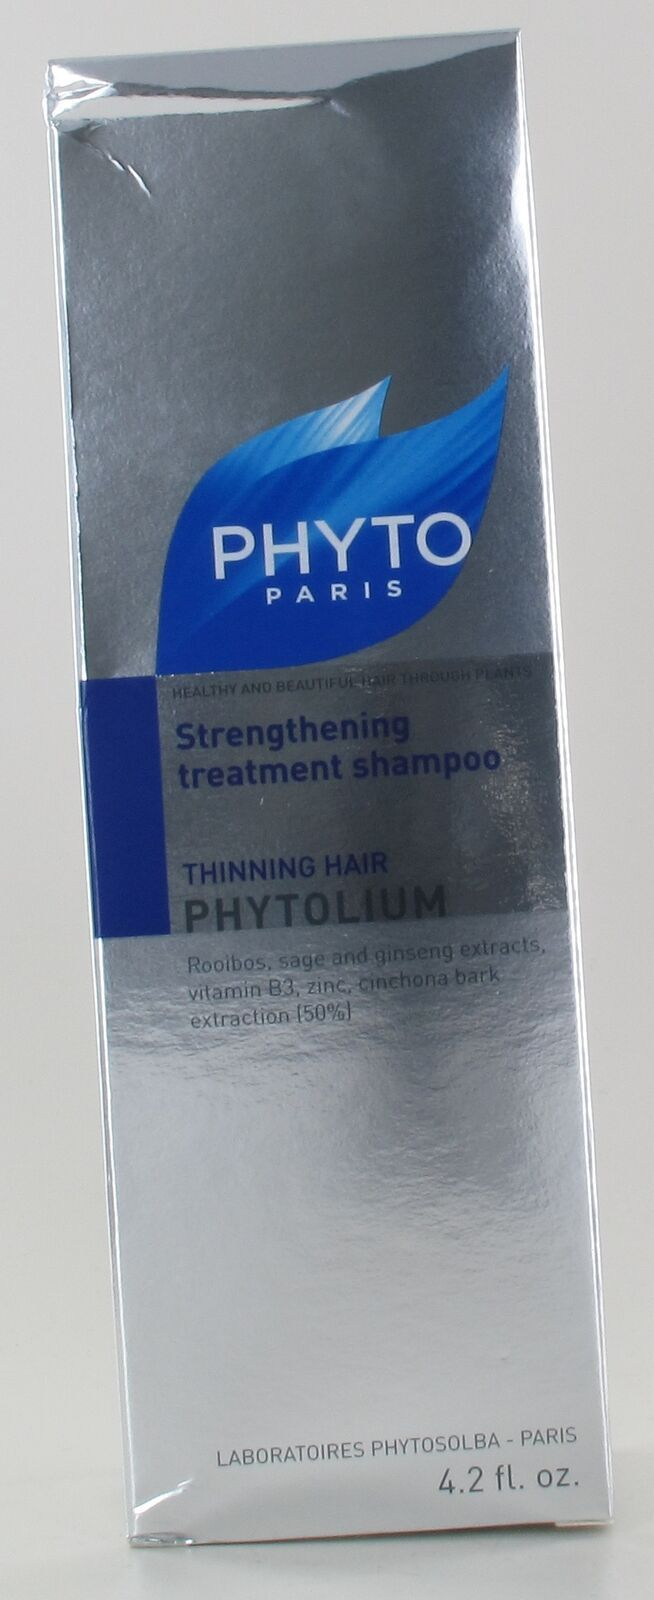 Phyto Paris Strengthening Treatment Shampoo 4.2oz